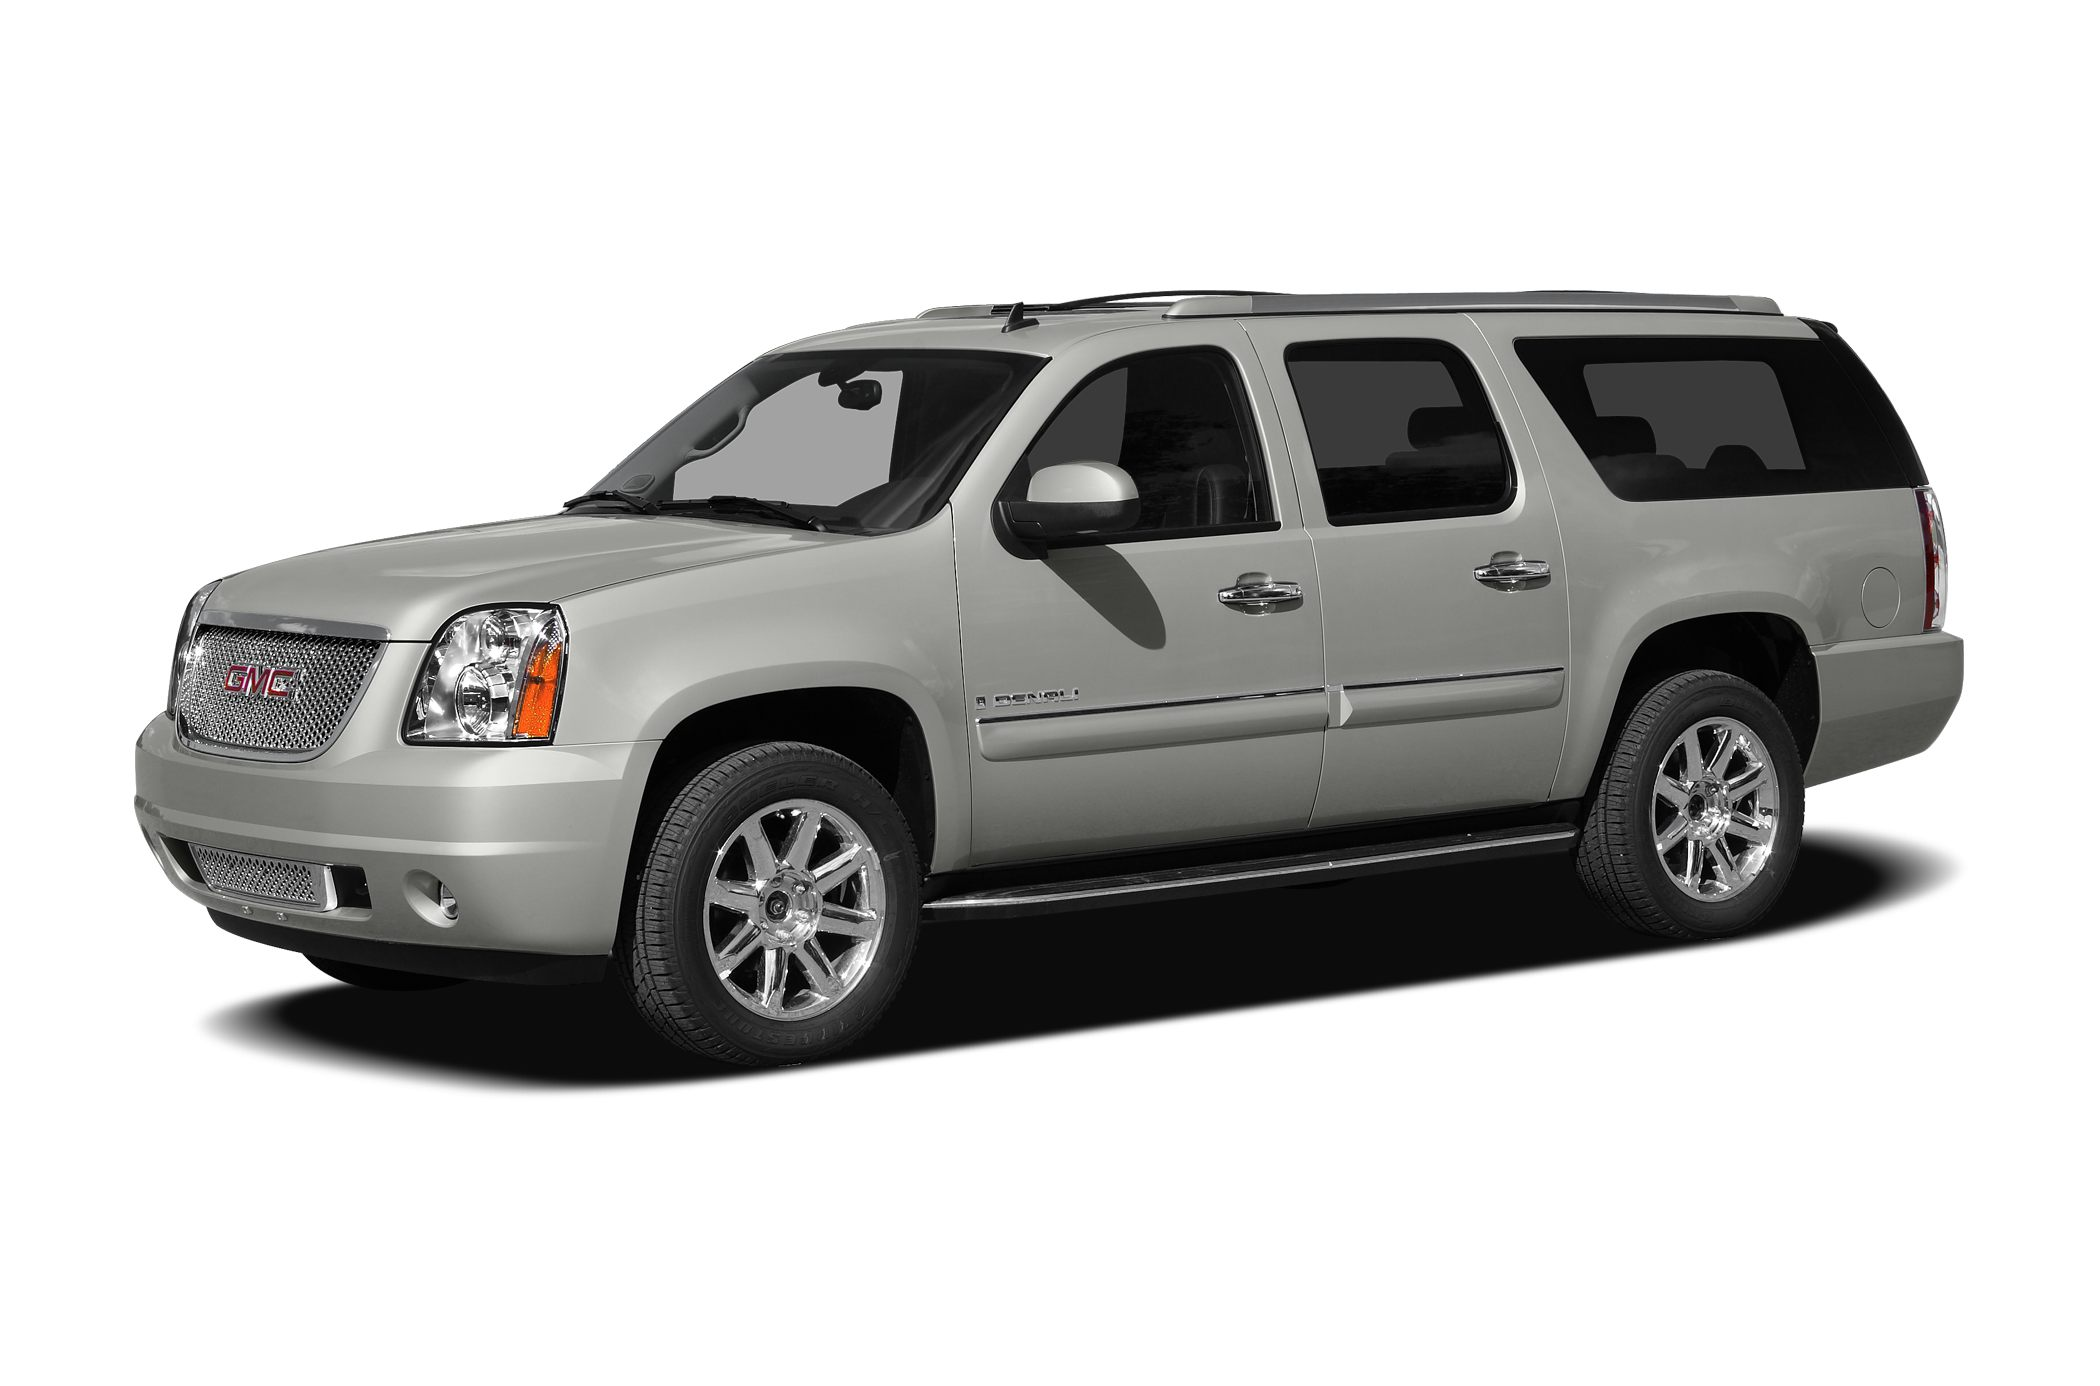 2009 GMC Yukon XL Denali SUV for sale in Missoula for $35,995 with 36,321 miles